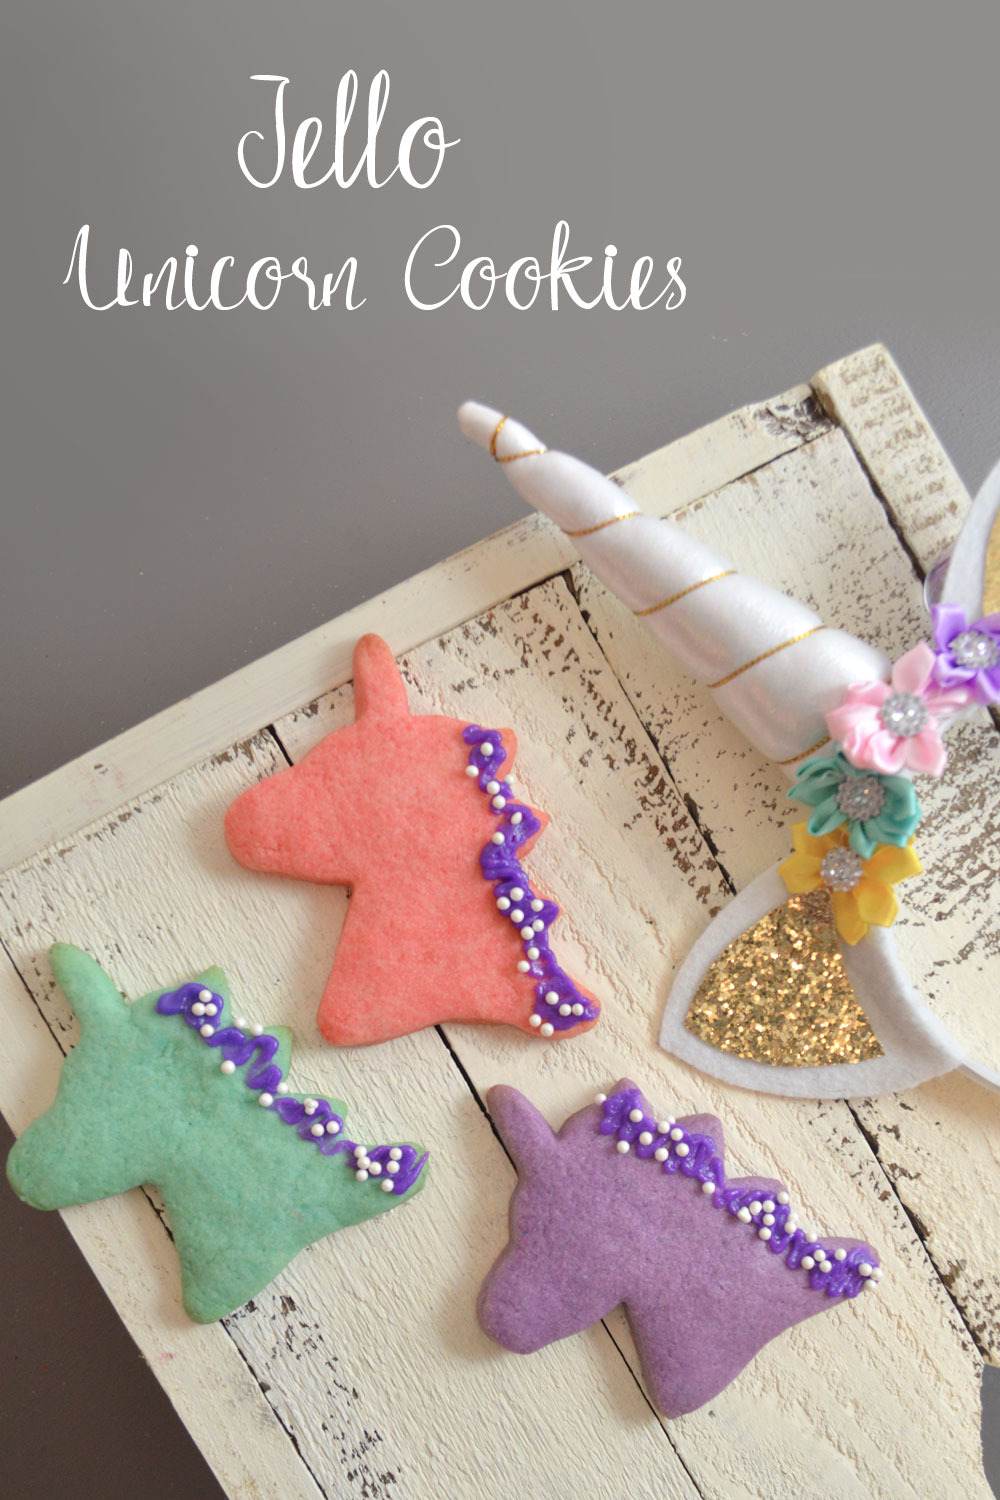 Jello Unicorn Cookies for a tea party